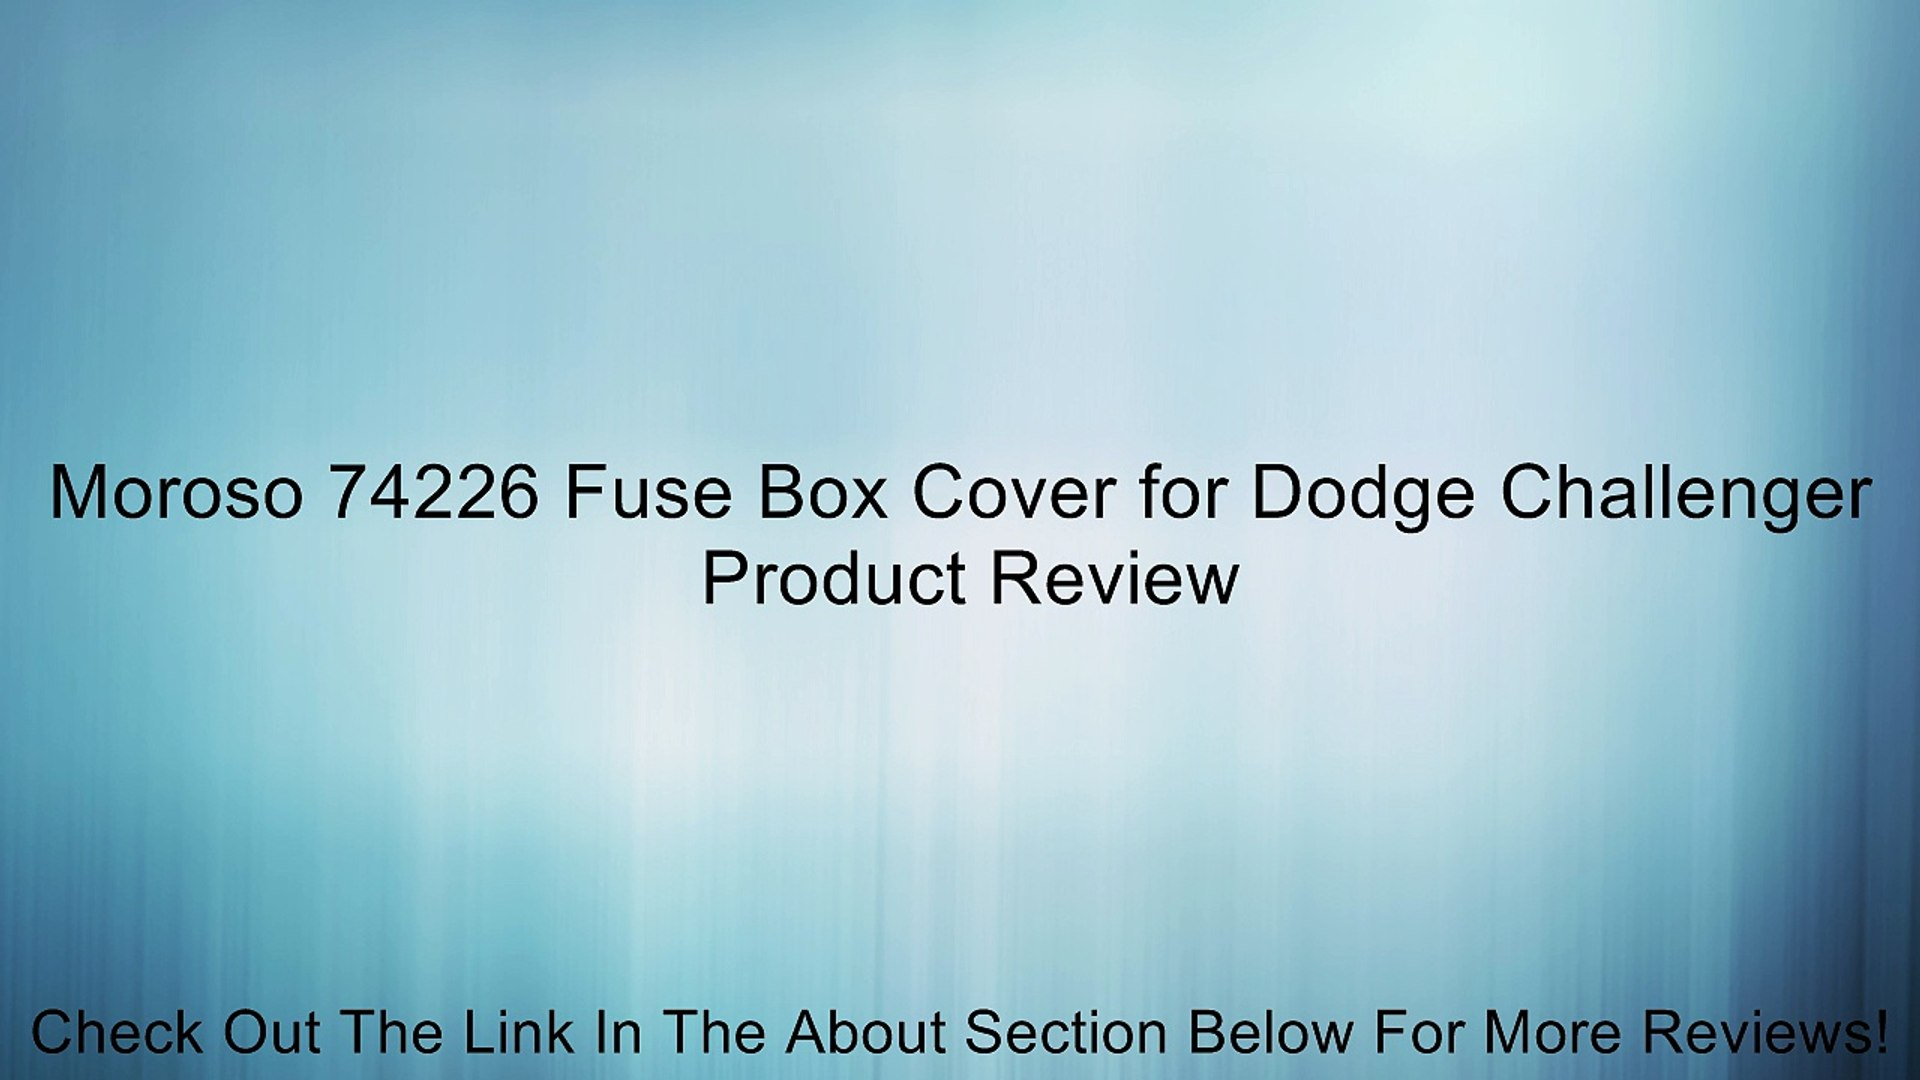 Moroso 74226 Fuse Box Cover for Dodge Challenger Review on dodge challenger windshield, dodge challenger amp location, dodge challenger parking light, dodge challenger cigarette lighter, dodge challenger back window, dodge challenger strut, dodge d150 fuse box, dodge challenger caliper, dodge challenger air cleaner, dodge challenger console, dodge challenger fuel injector, dodge challenger speed sensor, dodge challenger camshaft, dodge challenger speaker, dodge challenger bumper guard, dodge challenger relay, dodge stealth fuse box, dodge challenger starter, dodge challenger piston, dodge challenger coolant reservoir,